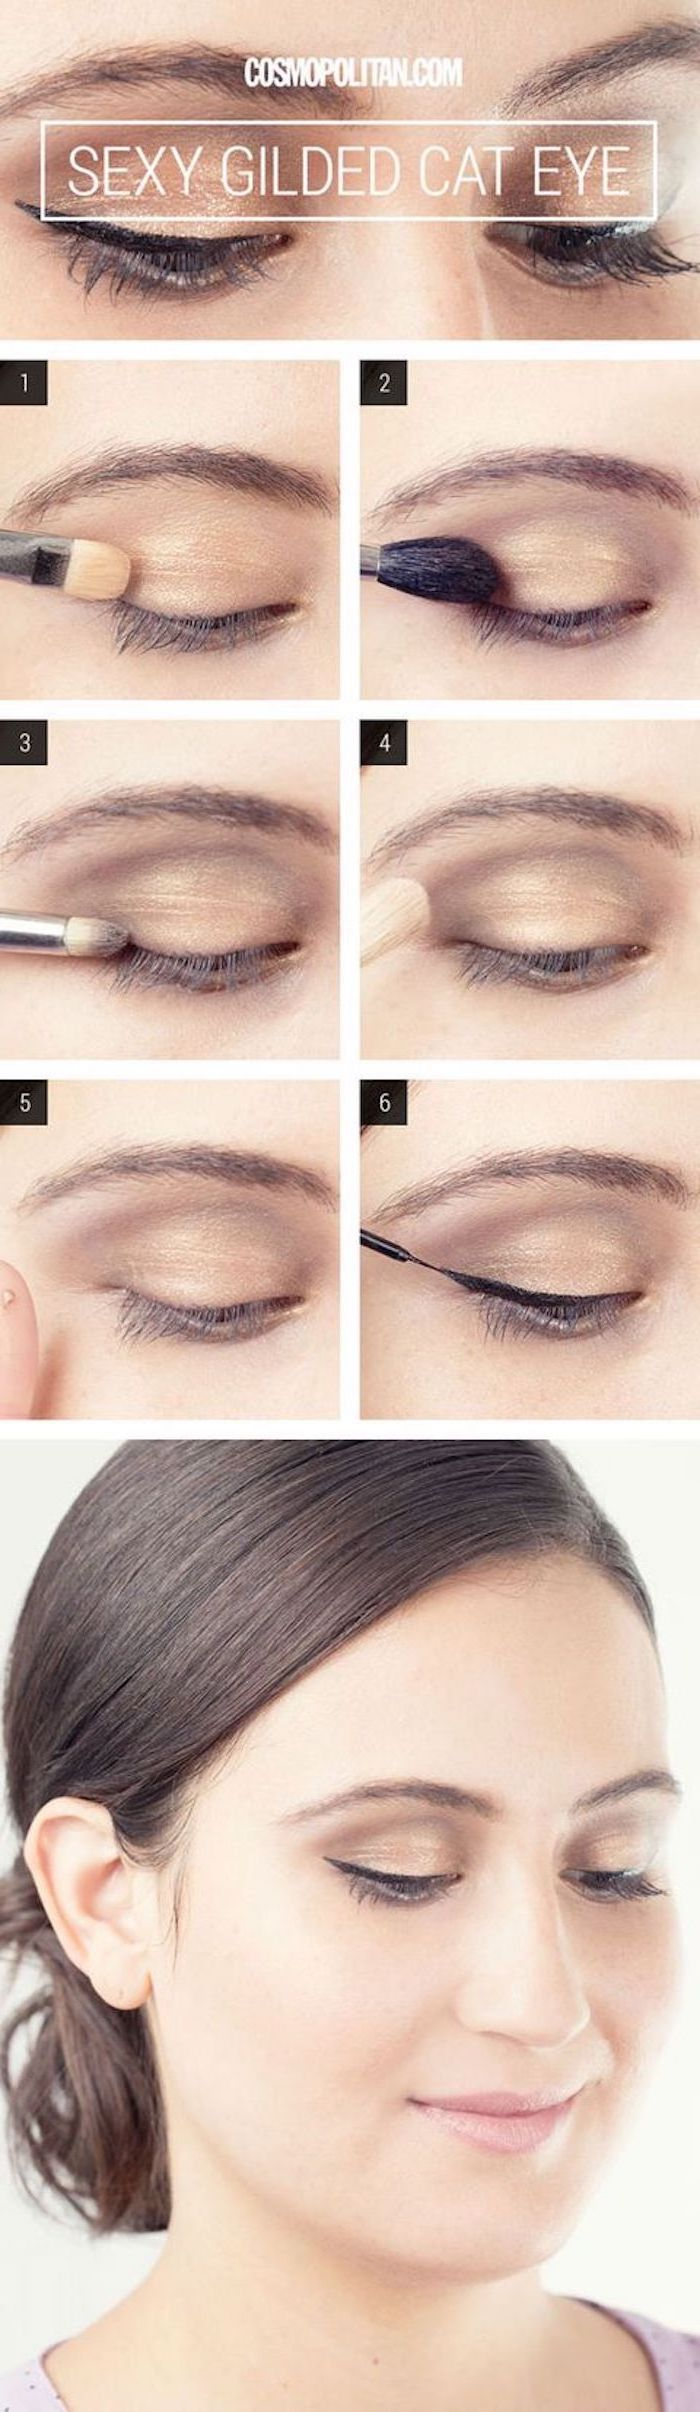 gilded cat eye, step by step diy tutorial, green eyeshadow, nude eyeshadow colors, black cat eyeliner